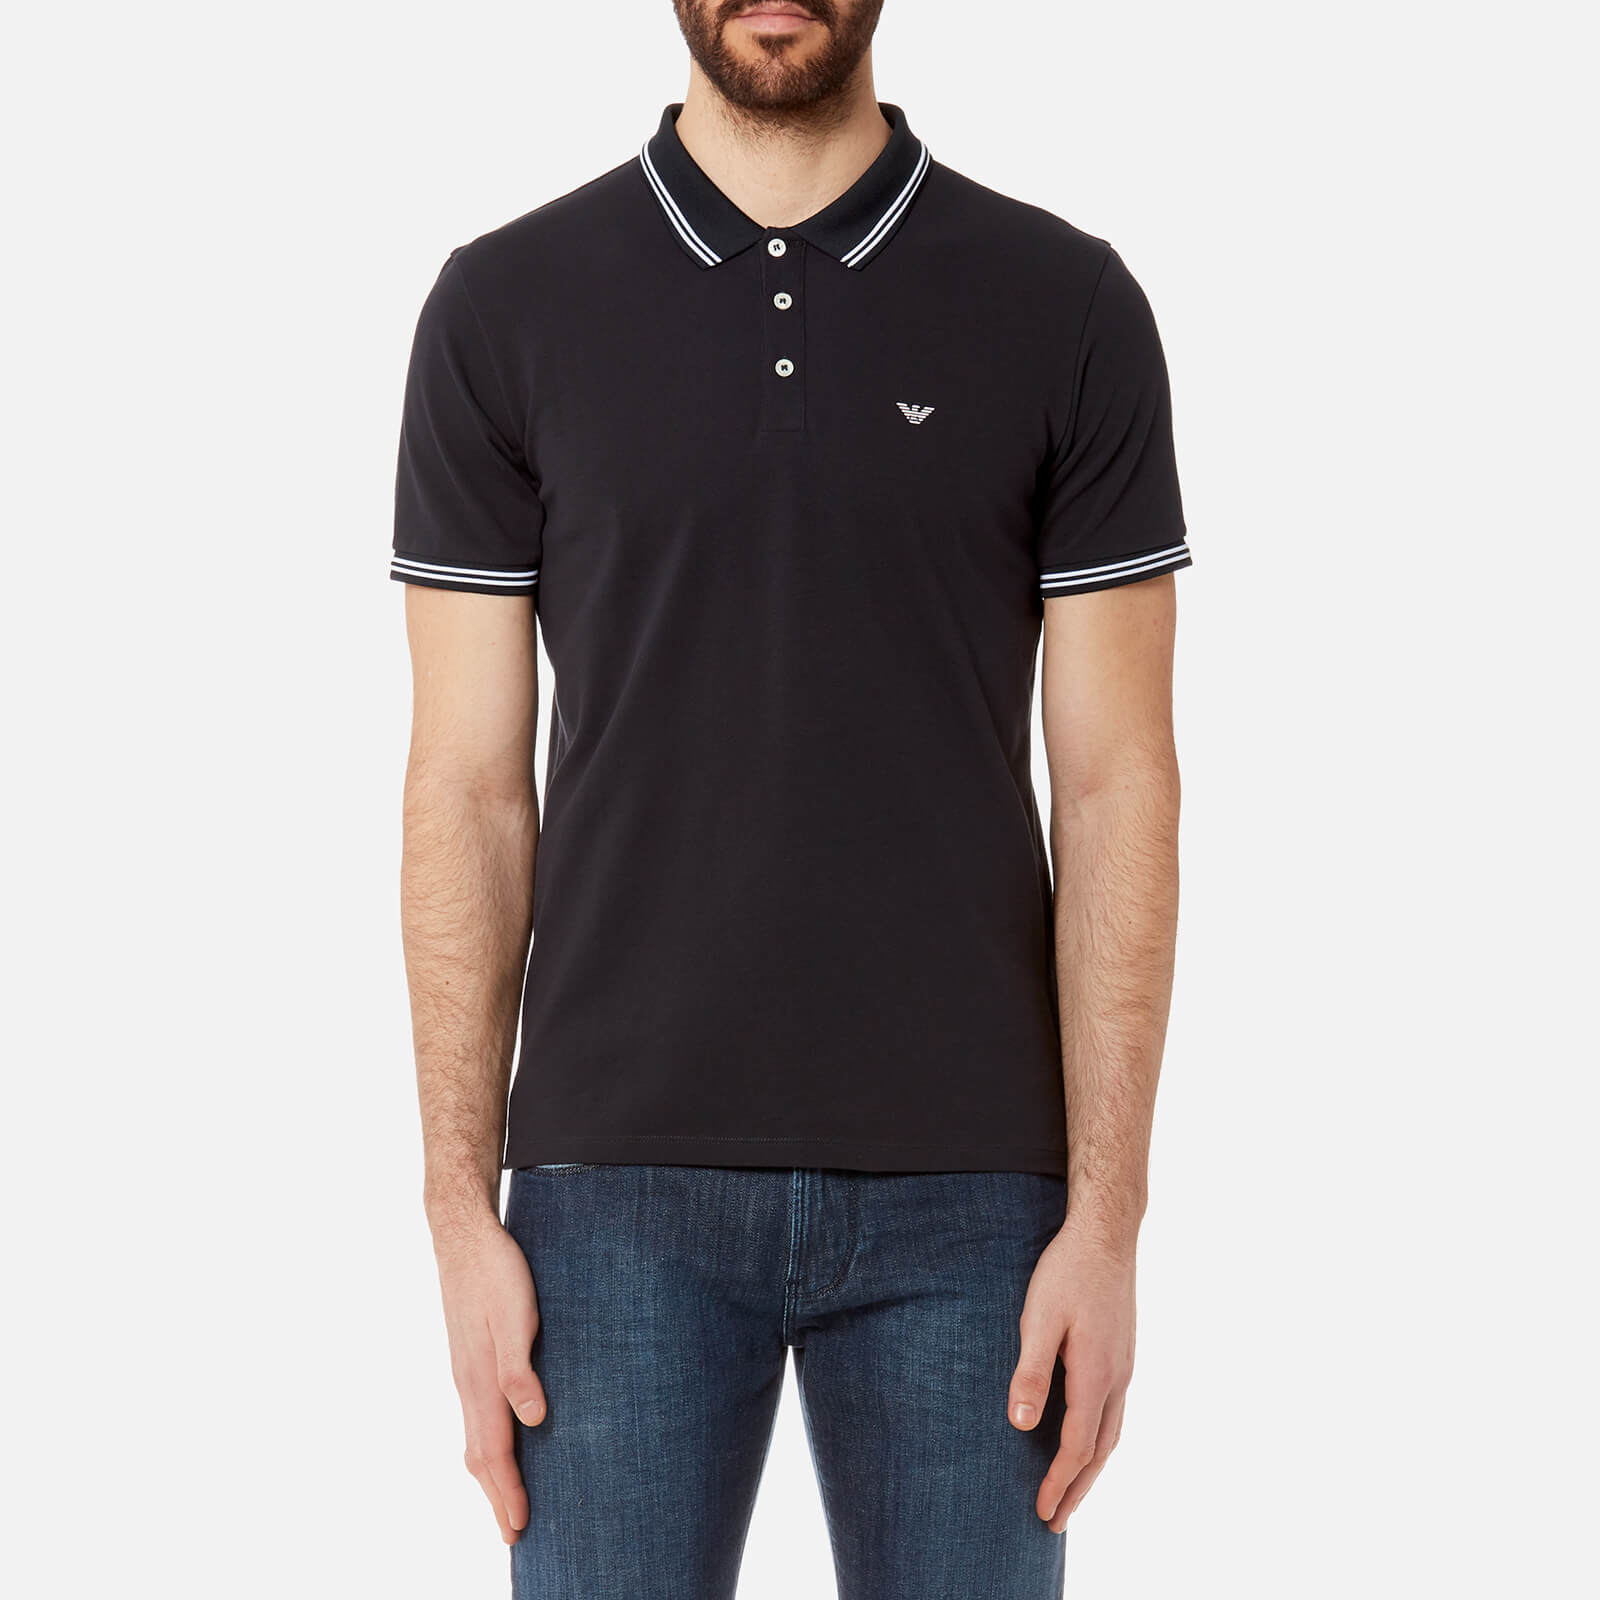 dfdb158ee Emporio Armani Men's Tipped Polo Shirt - Blue Scuro - Free UK Delivery over  £50